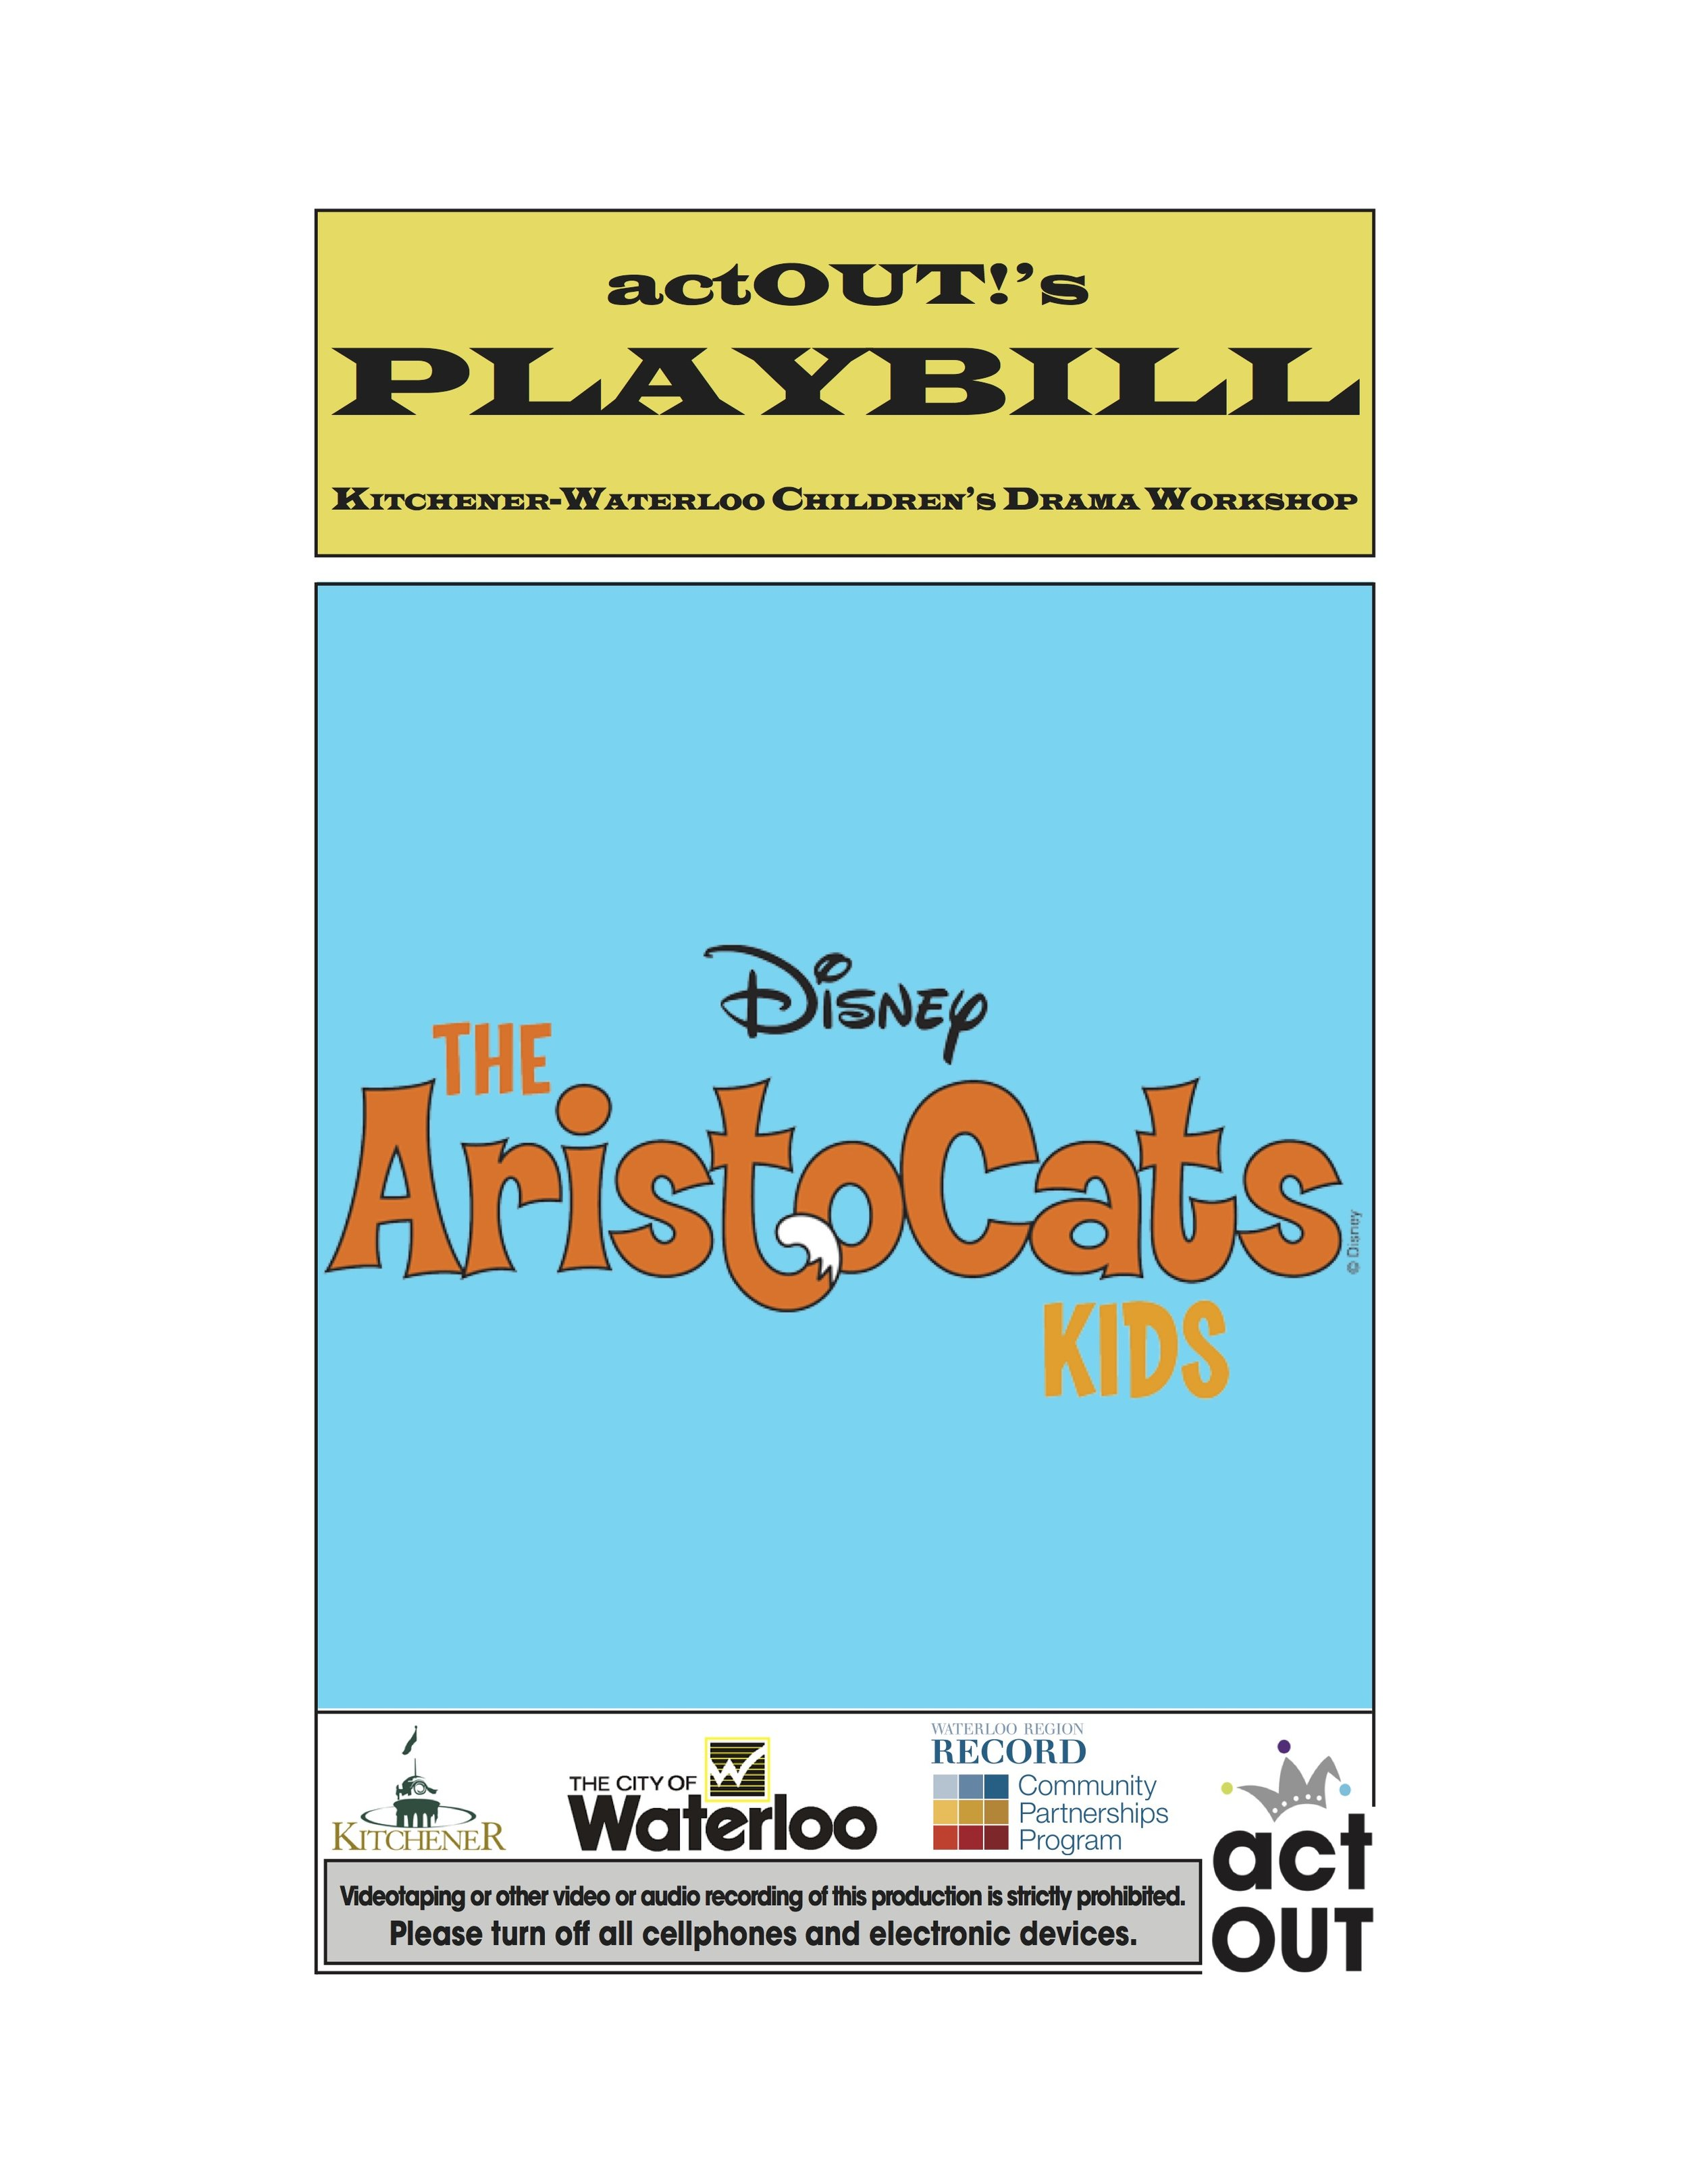 Advertise in actOUT!'s Playbill - Remember: The more ads we get, the more rehearsal photos we can include.